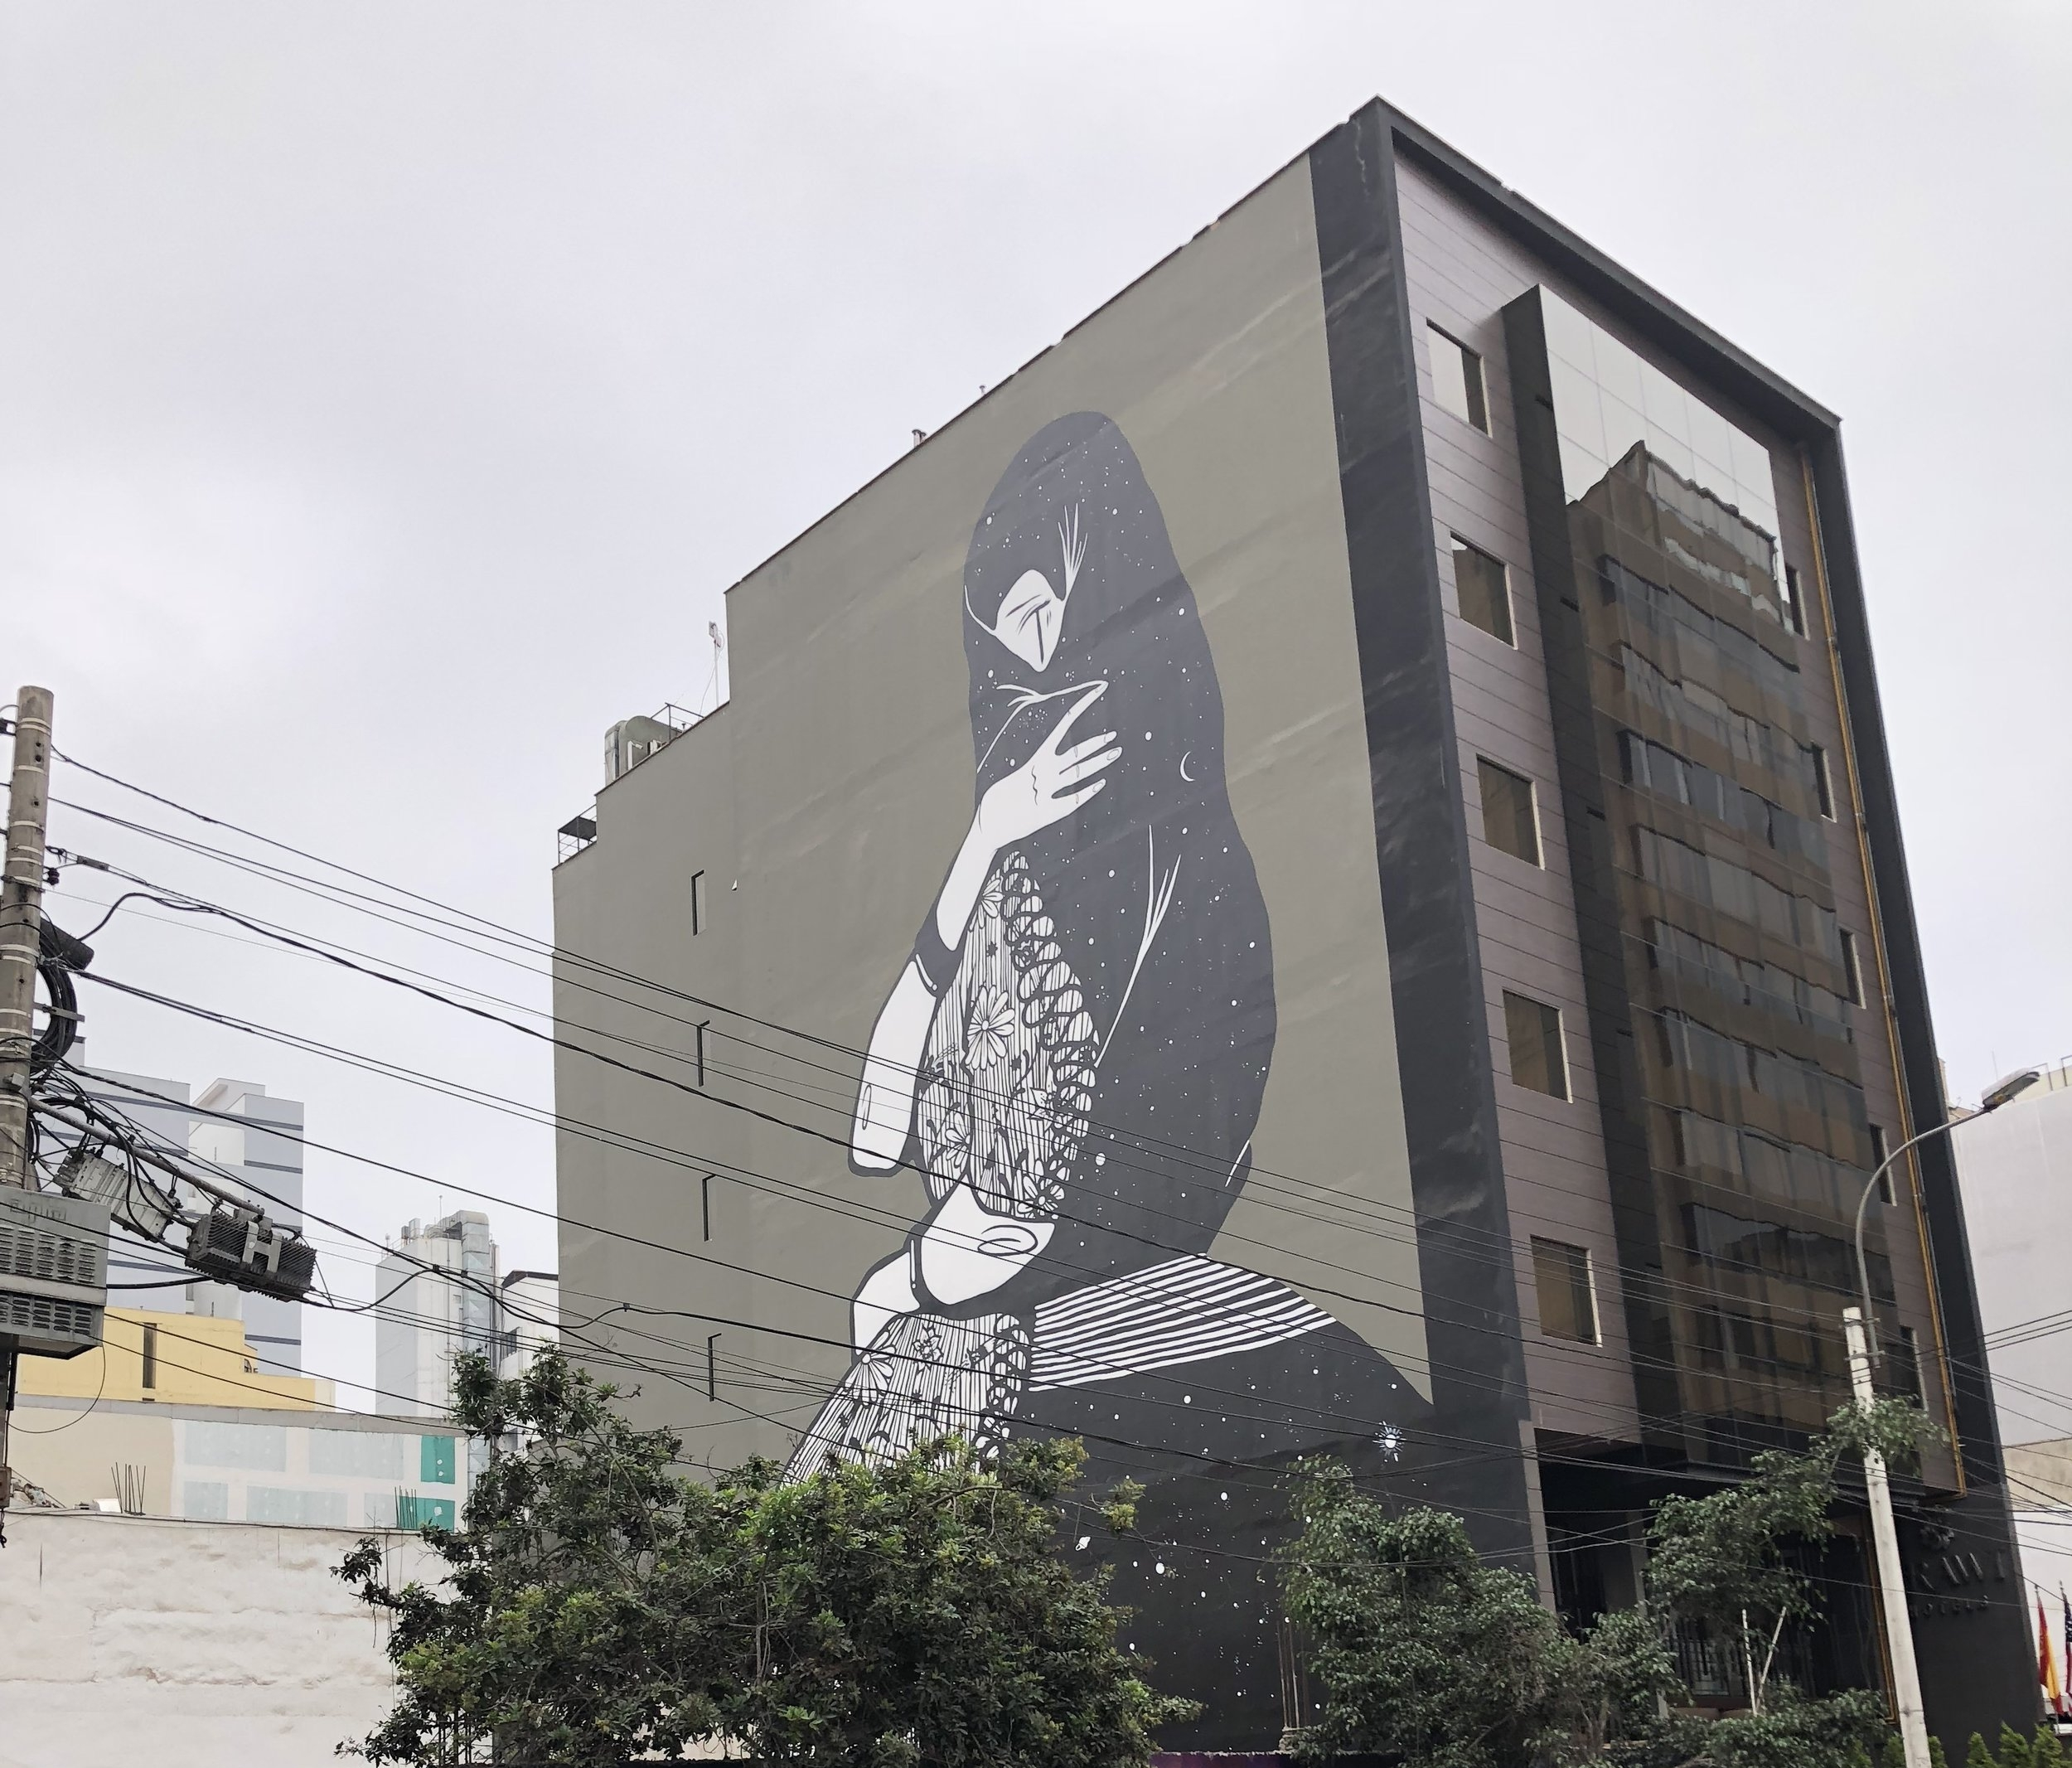 Art on Building in Lima